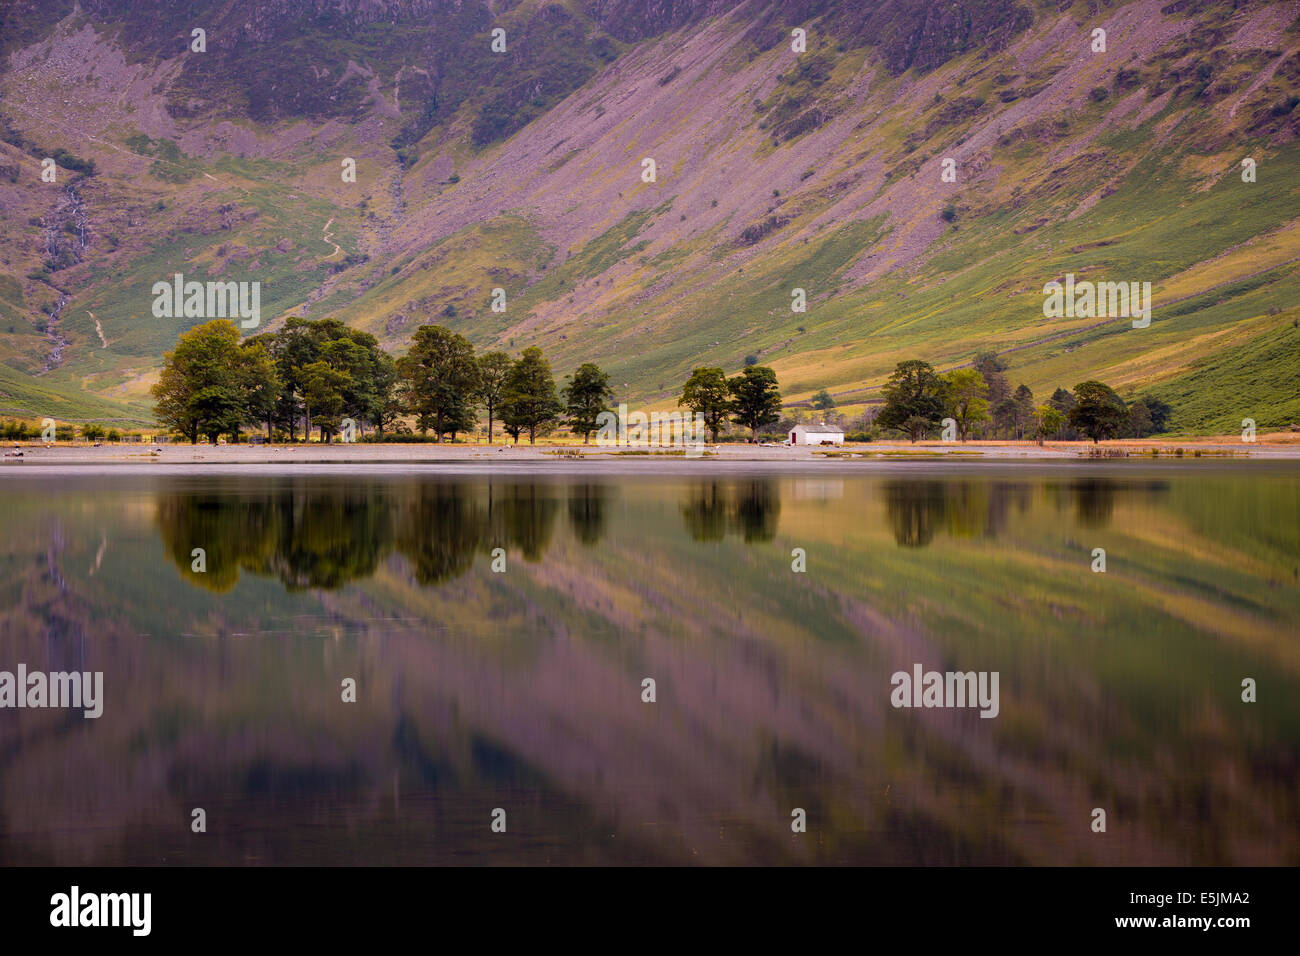 Pre-alba riflessioni sul lago Buttermere, Cumbria, Lake District, Inghilterra Immagini Stock